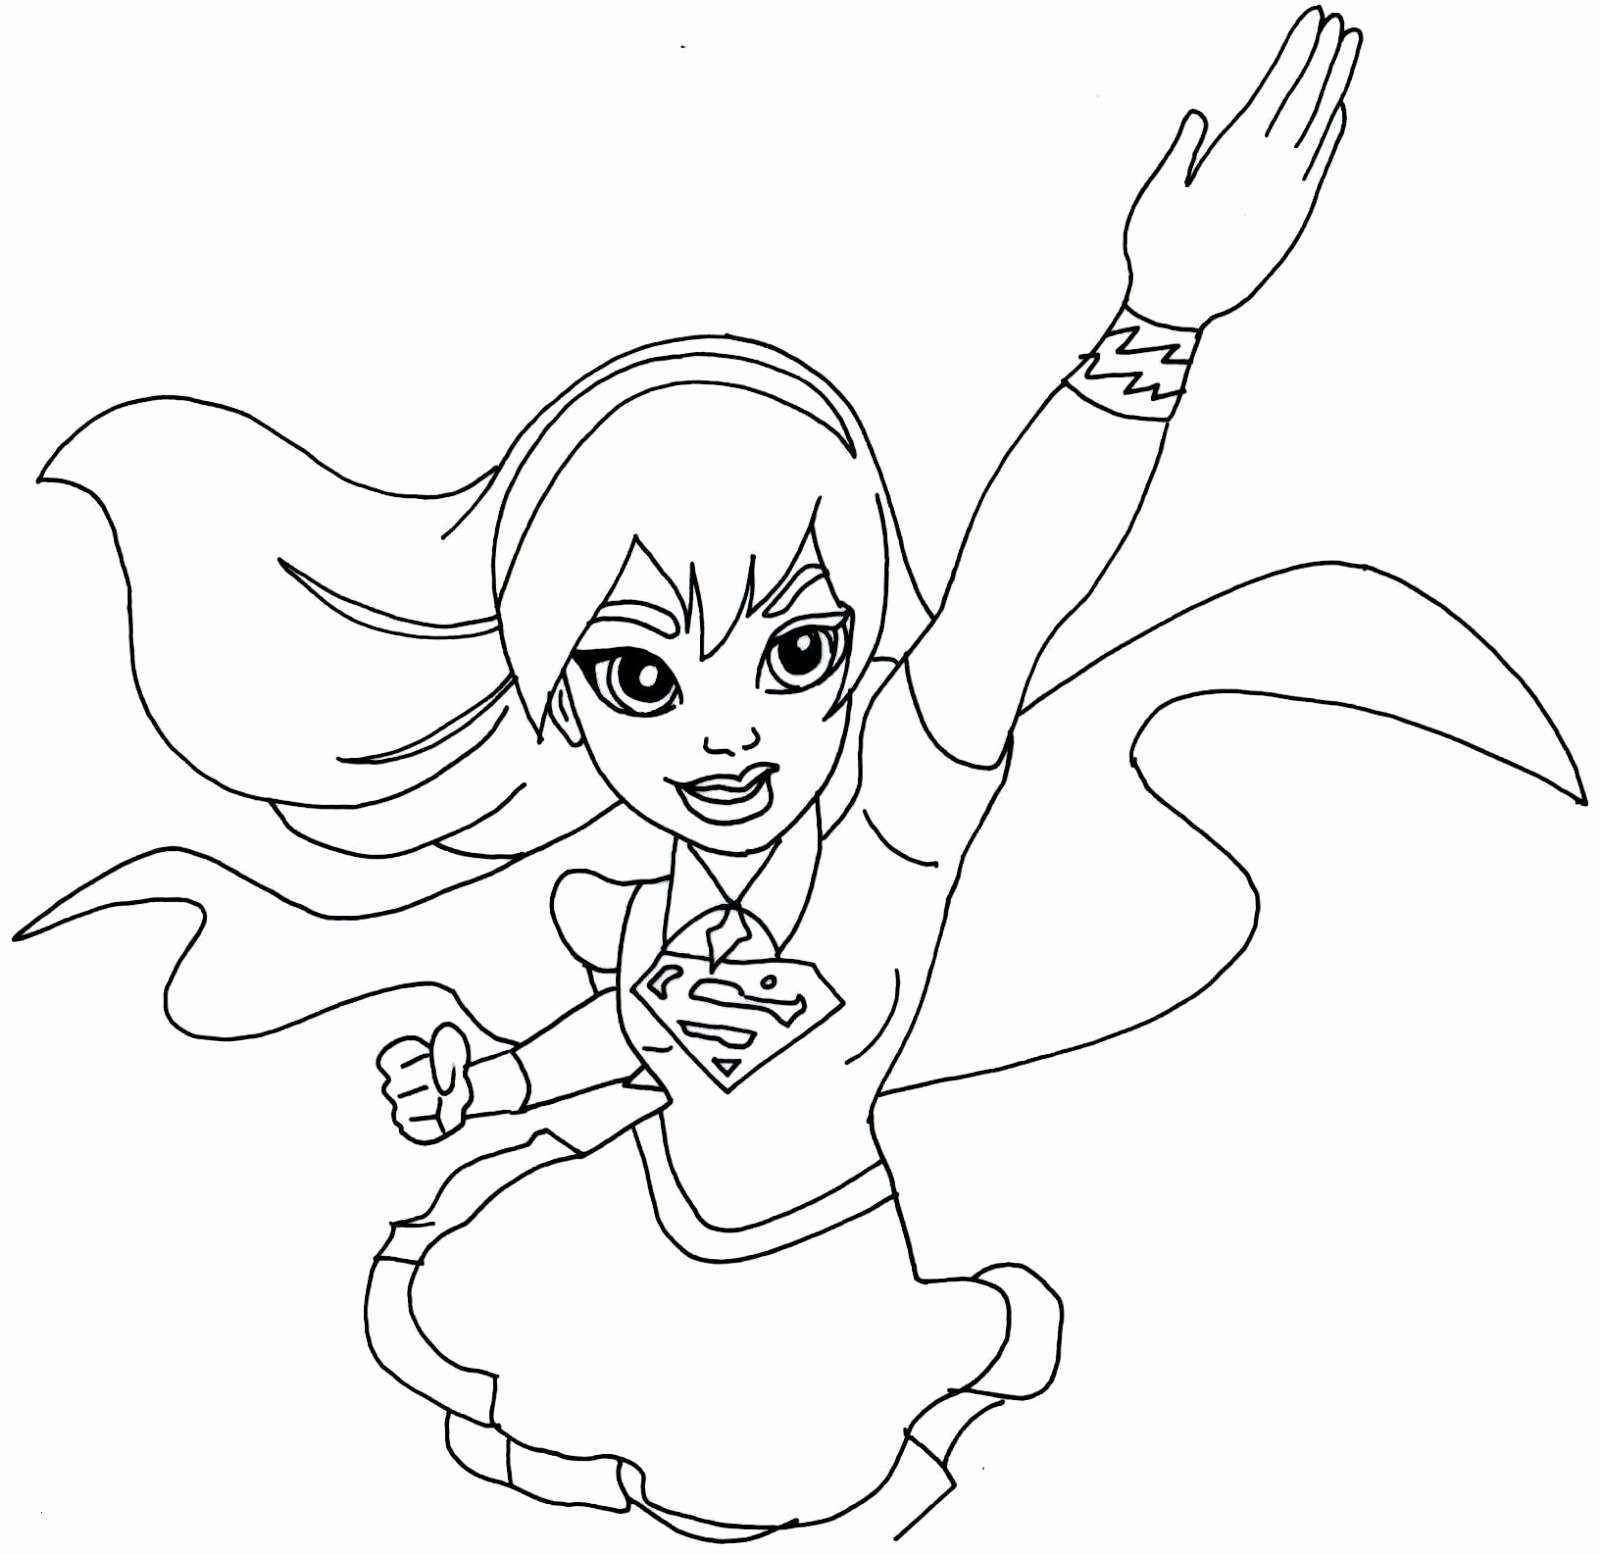 Female Superhero Coloring Pages  Gallery 8o - Free For kids